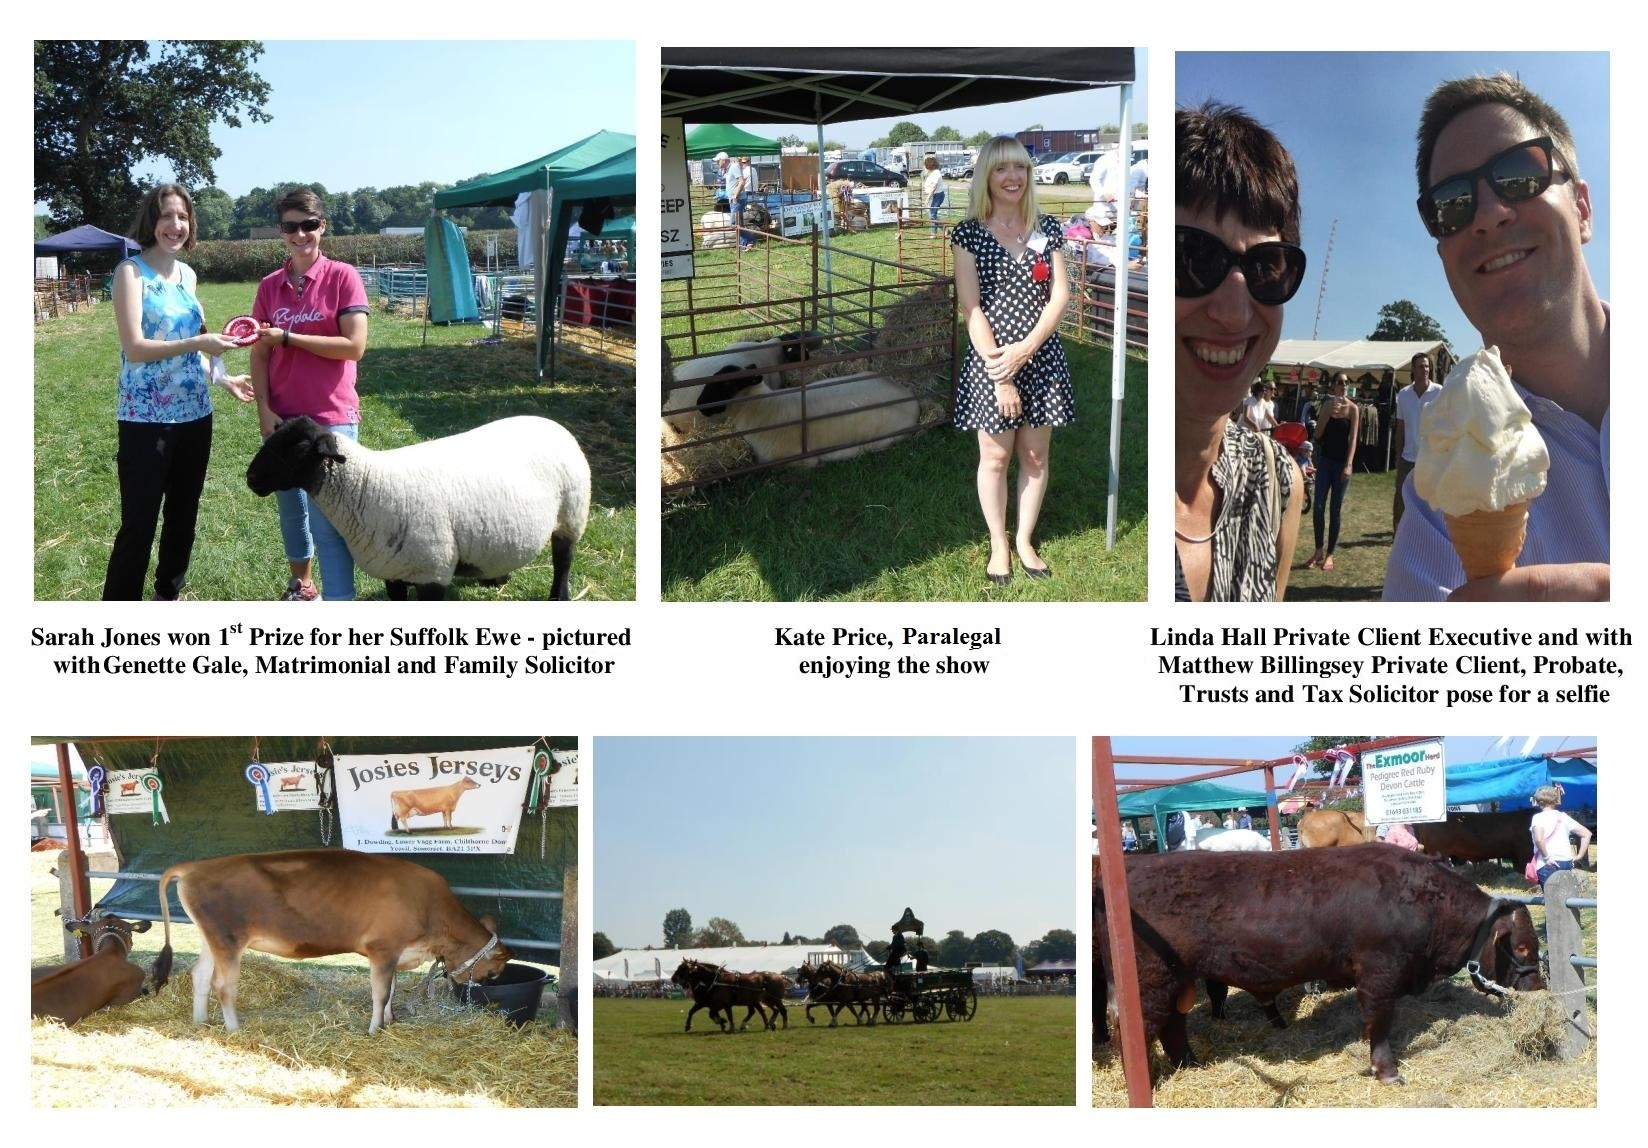 Time For Ice Cream – Great Day At The Gillingham And Shaftesbury Show